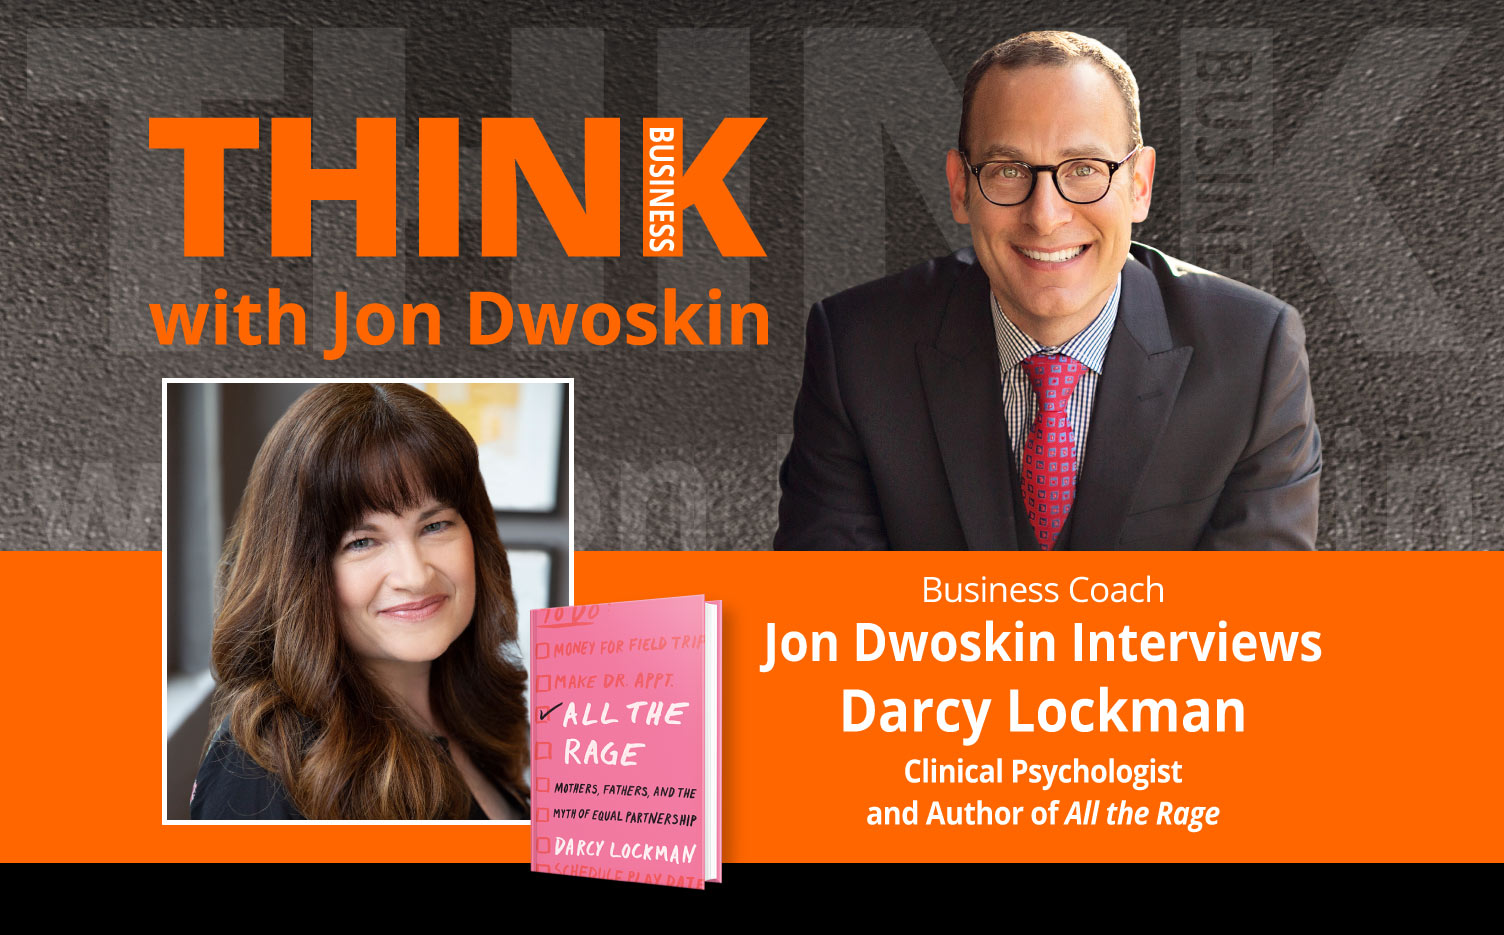 THINK Business Podcast: Jon Dwoskin Interviews Darcy Lockman, Clinical Psychologist and Author of All the Rage